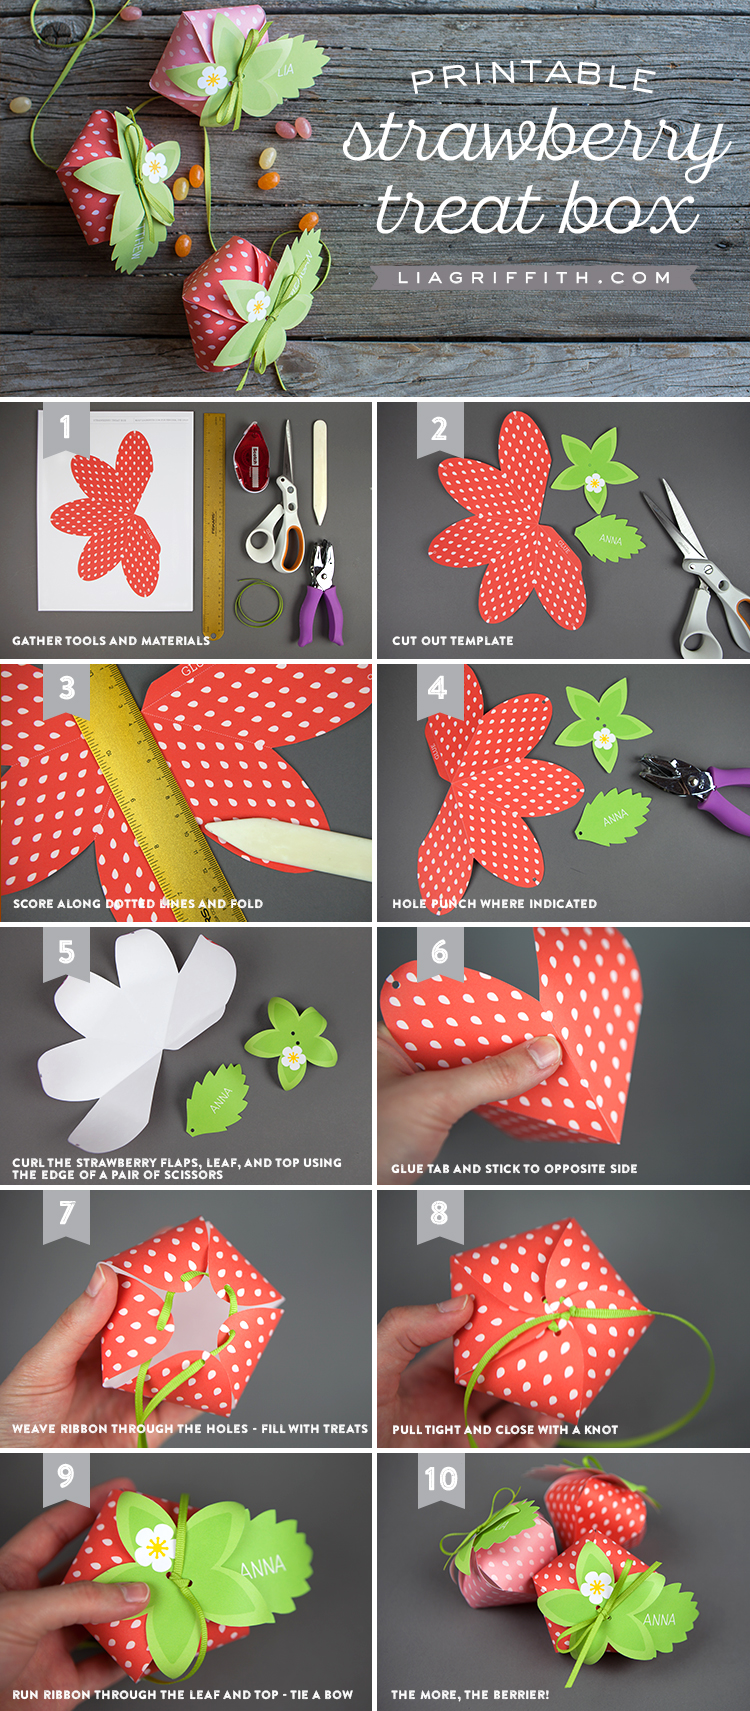 DIY photo tutorial for printable strawberry treat boxes by Lia Griffith